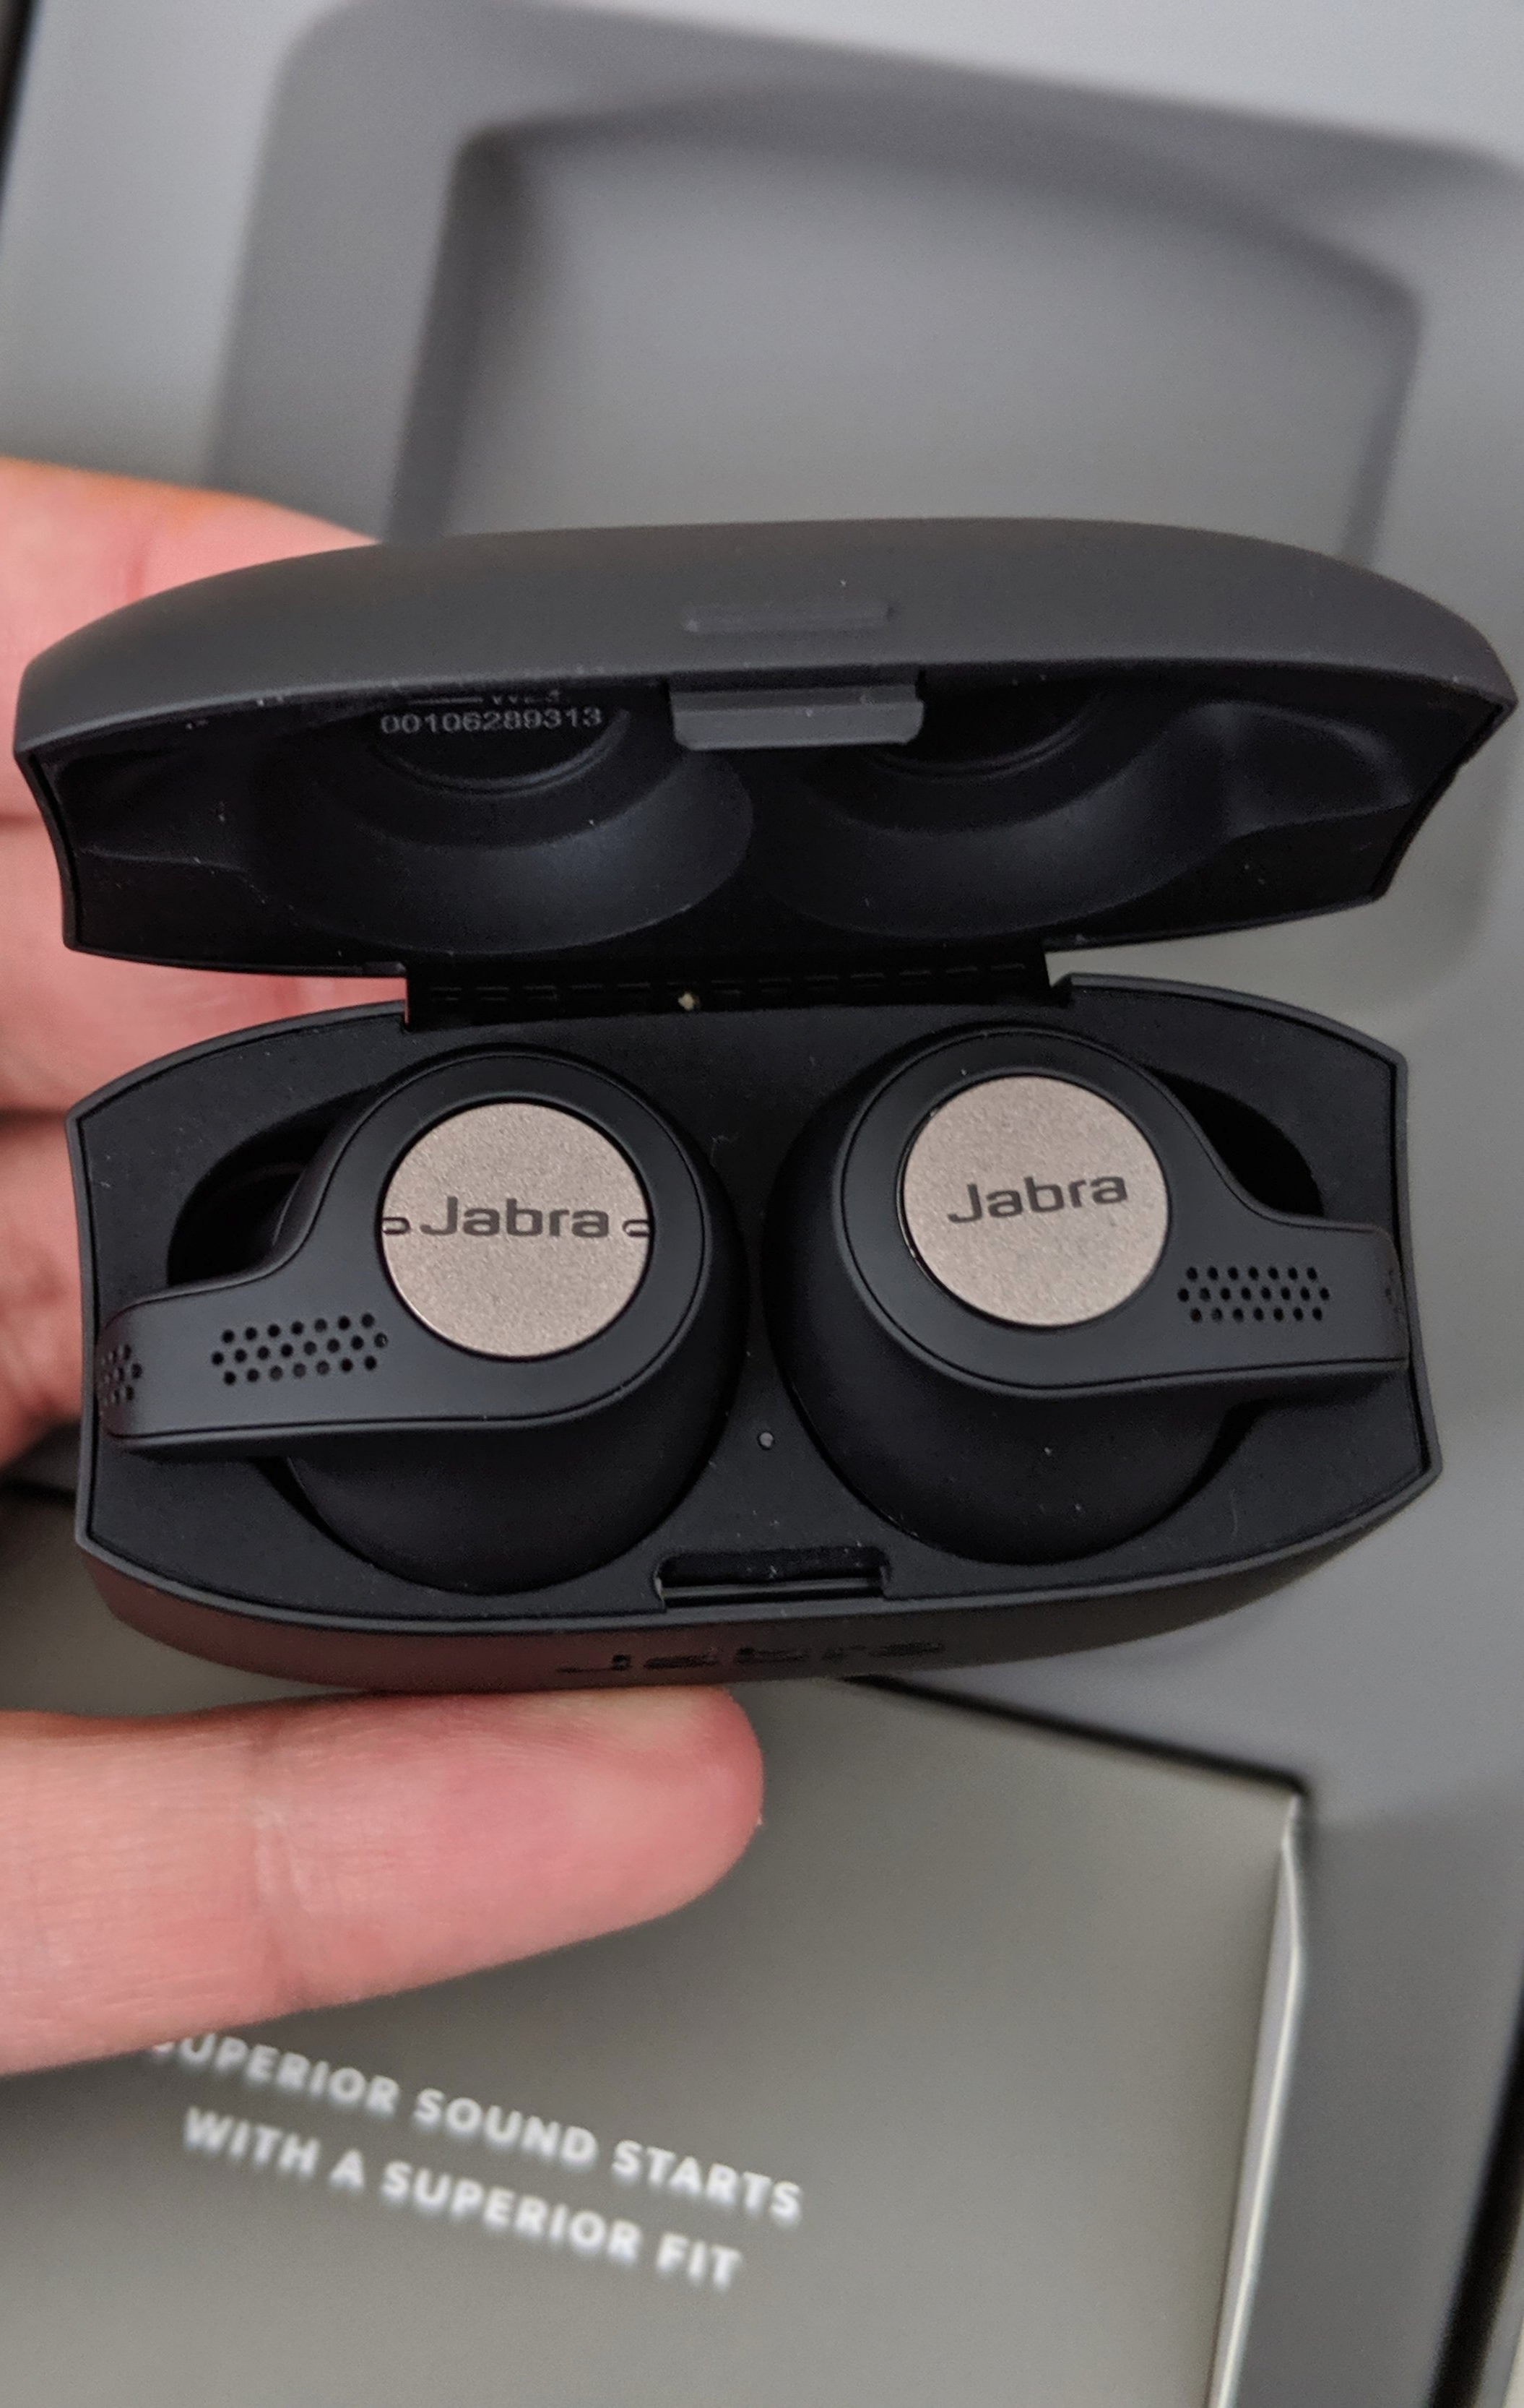 The Wireless Headphones inside the Charging Case